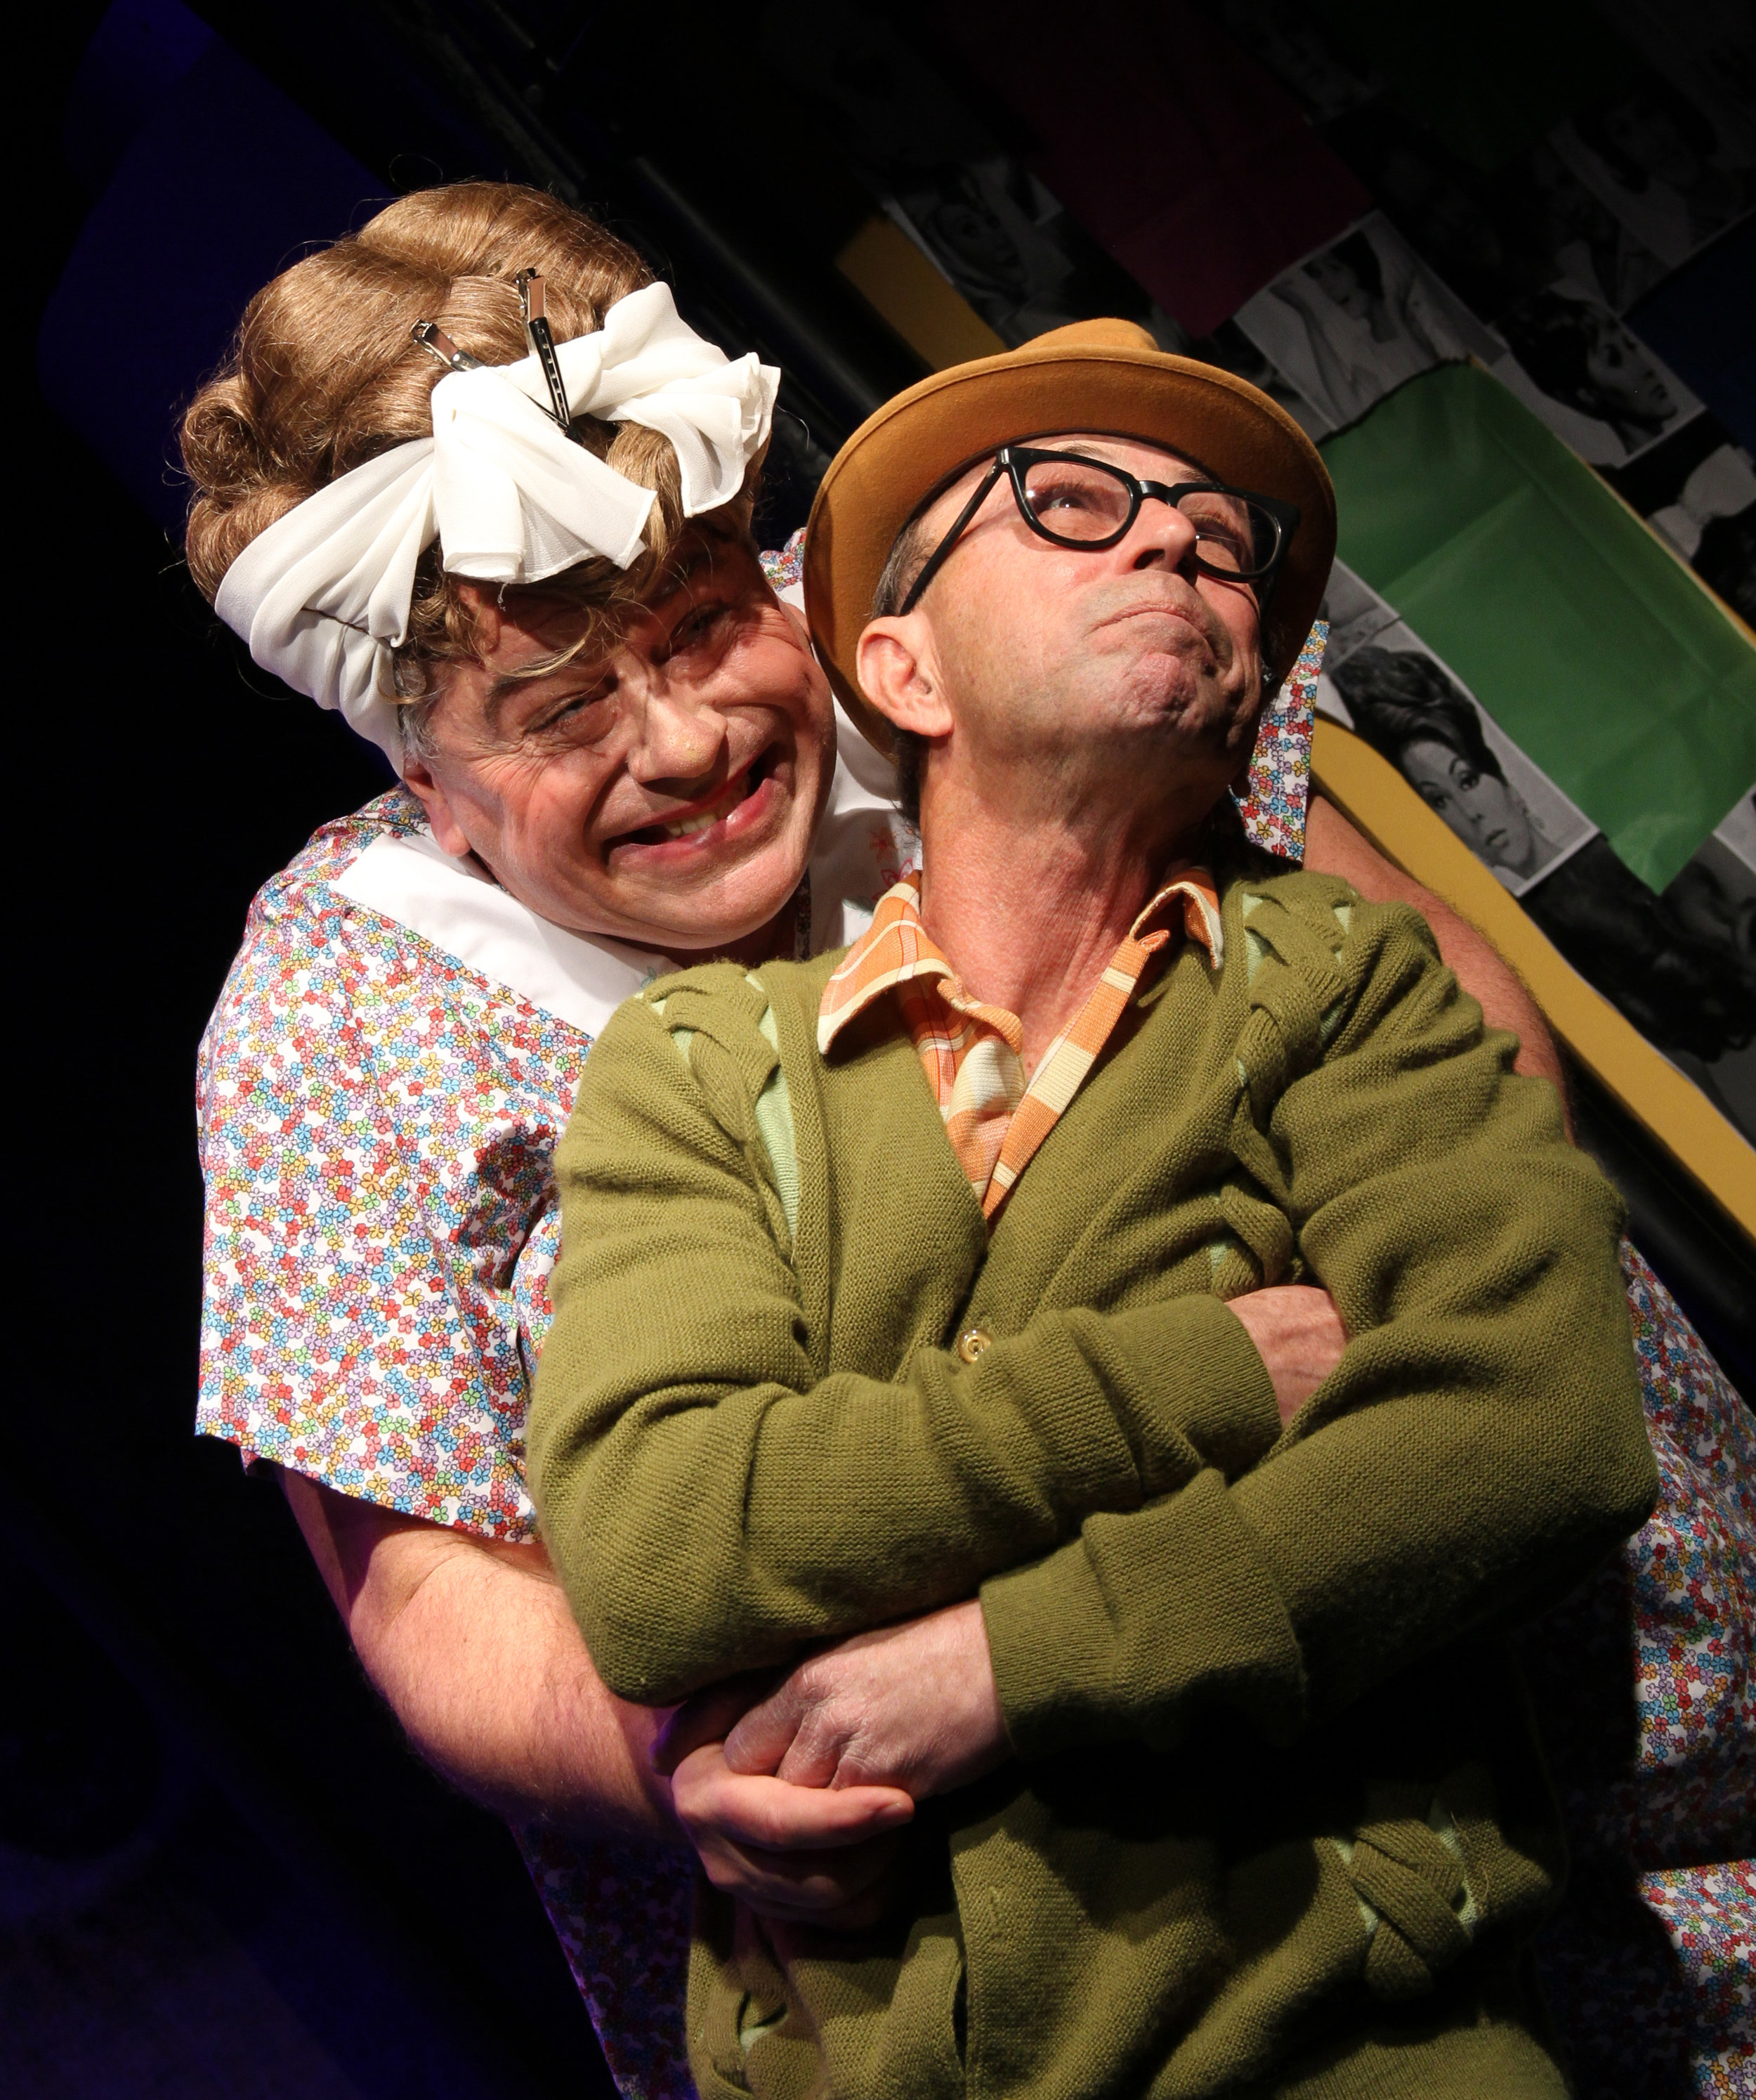 Tracy's oddball parents, Edna (Steve Hayes) and Wilbur (Jim Byrne). Photo: Teri Dobrzynski